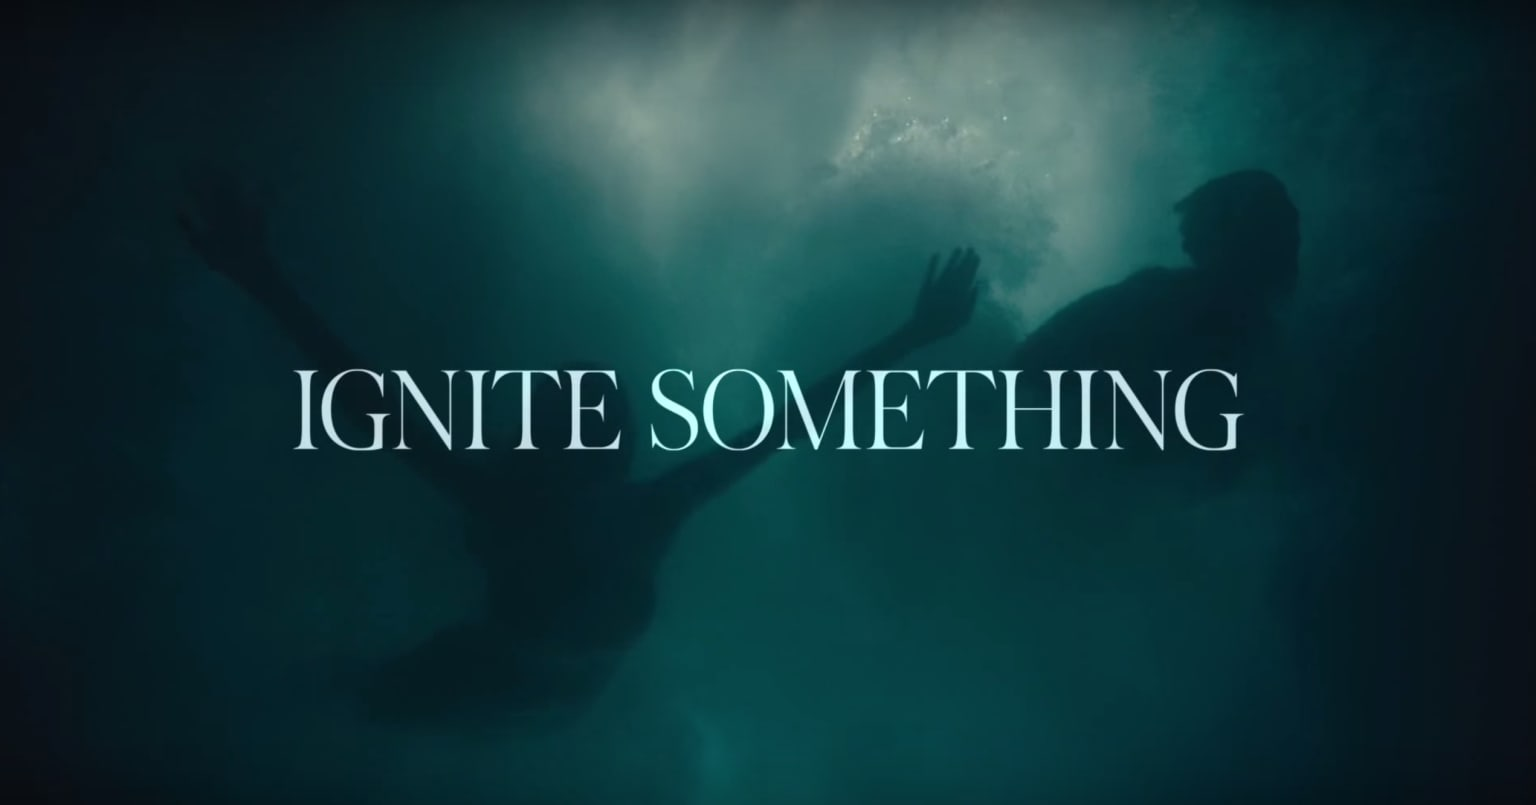 IGNITE SOMETHING